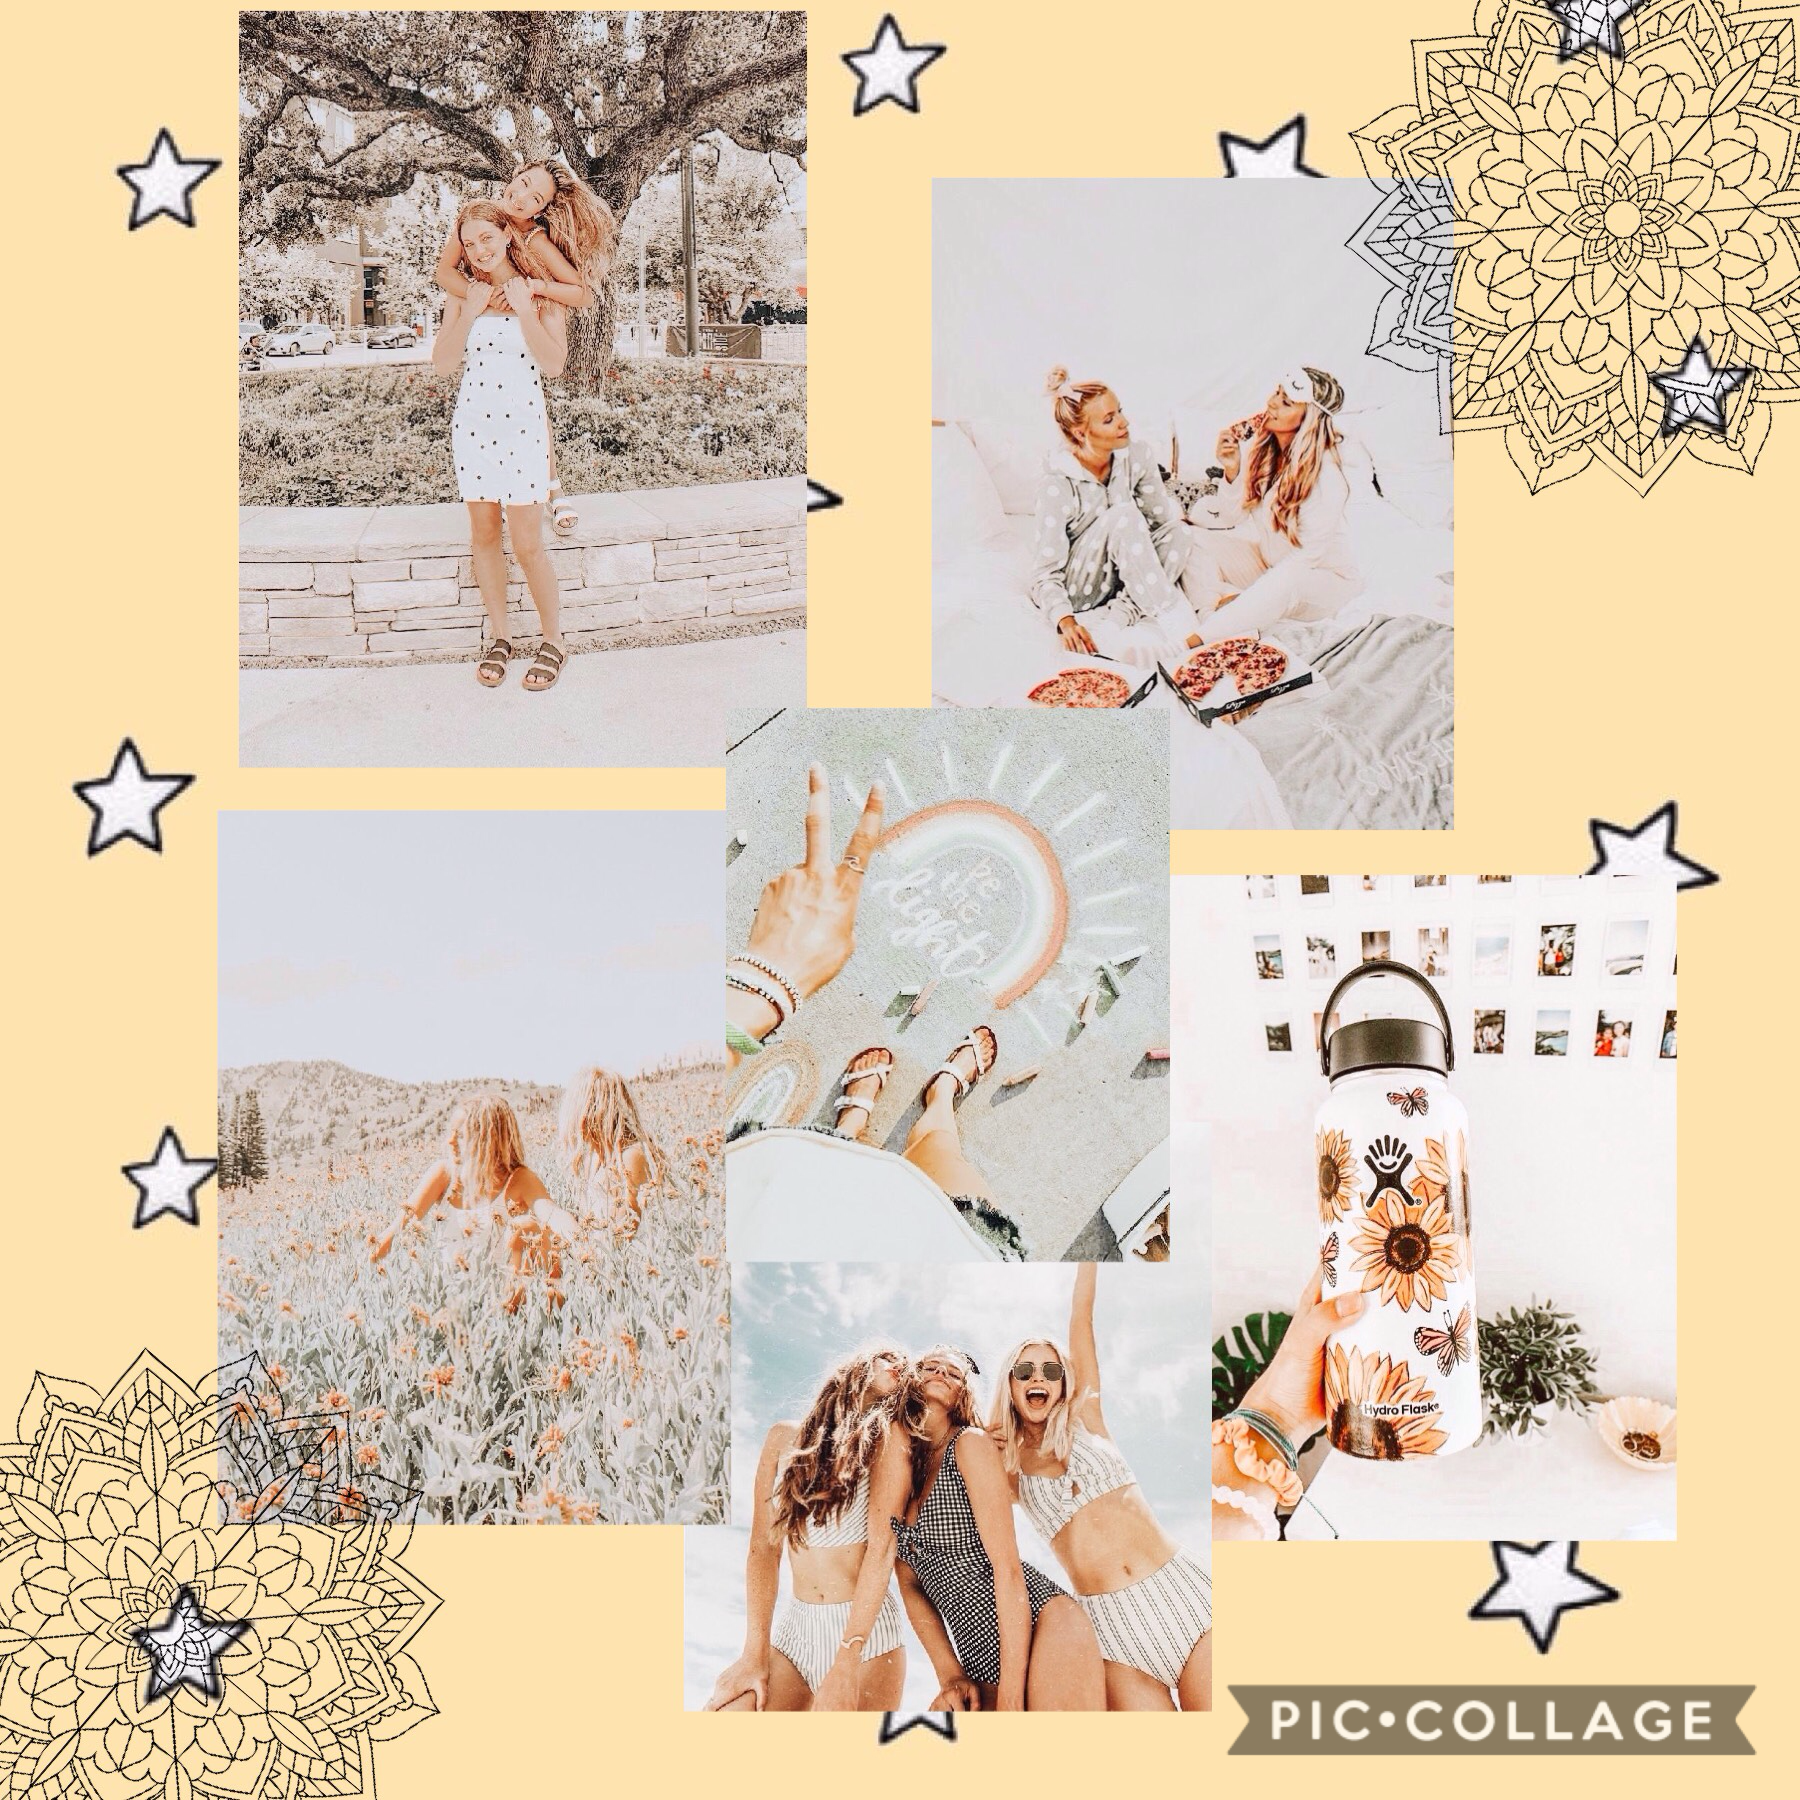 ☆tap☆ Hey guys my names Liv! I had an old account but i got logged out and I forgot my password😂 anyways hope you like this new account and my pc☆